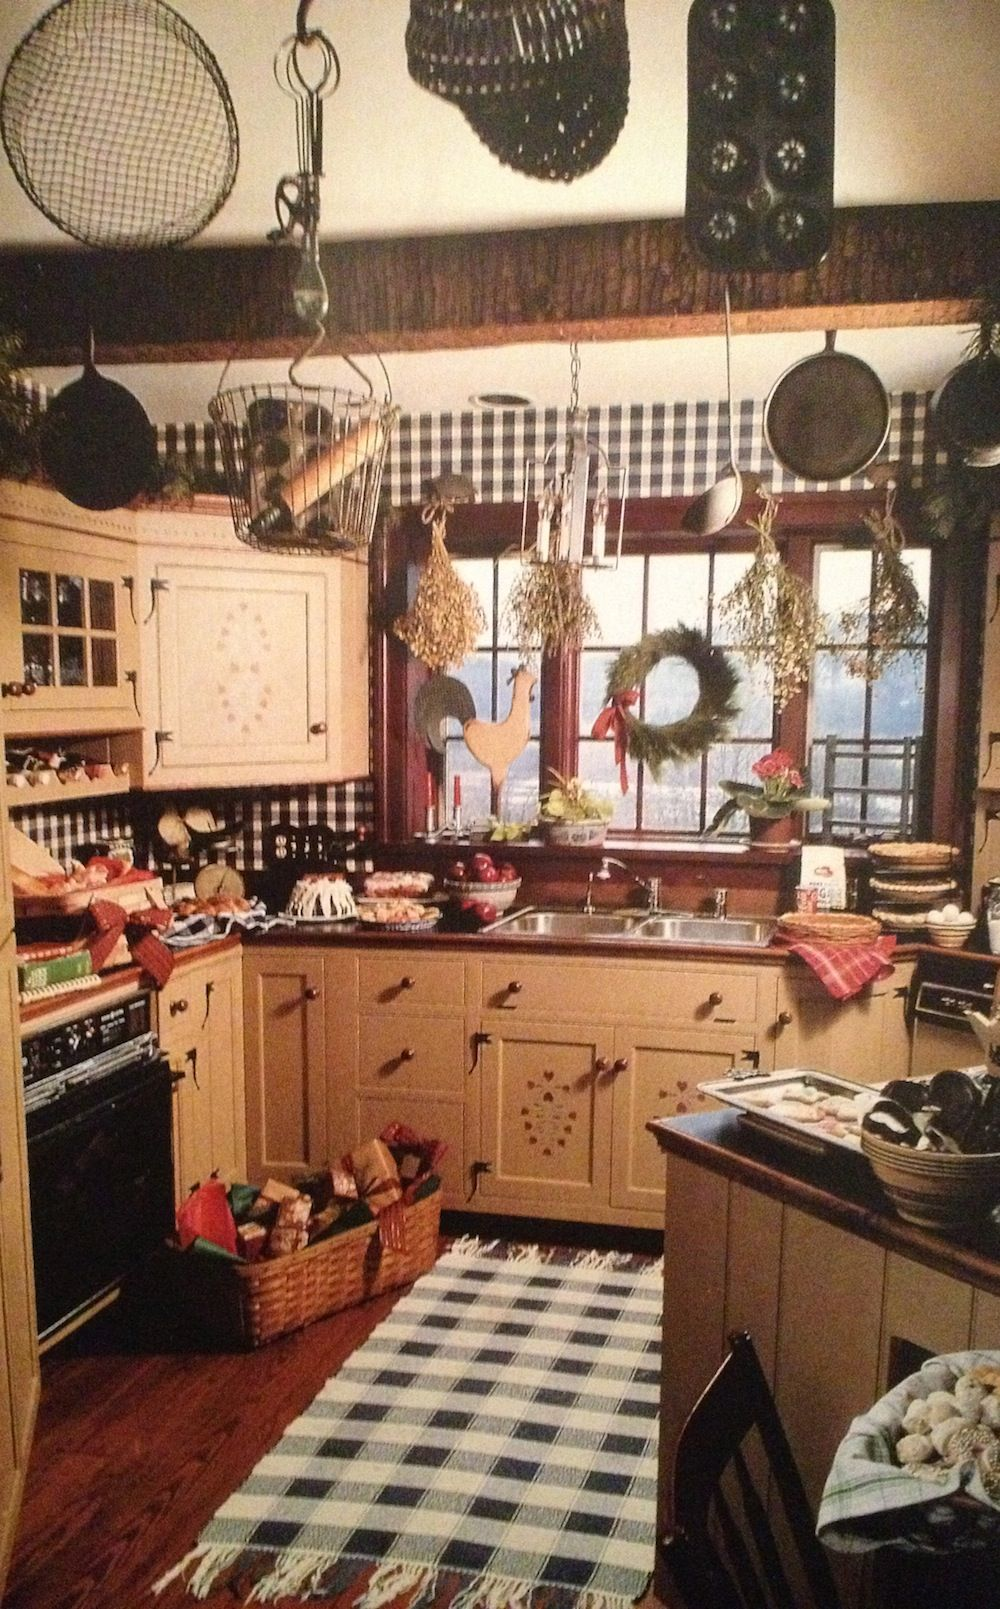 Prim Kitchen Love The Stenciling On The Cabinets What A Beautiful Kitchen Country Kitchen Decor Country Kitchen Wall Decor Rooster Kitchen Decor